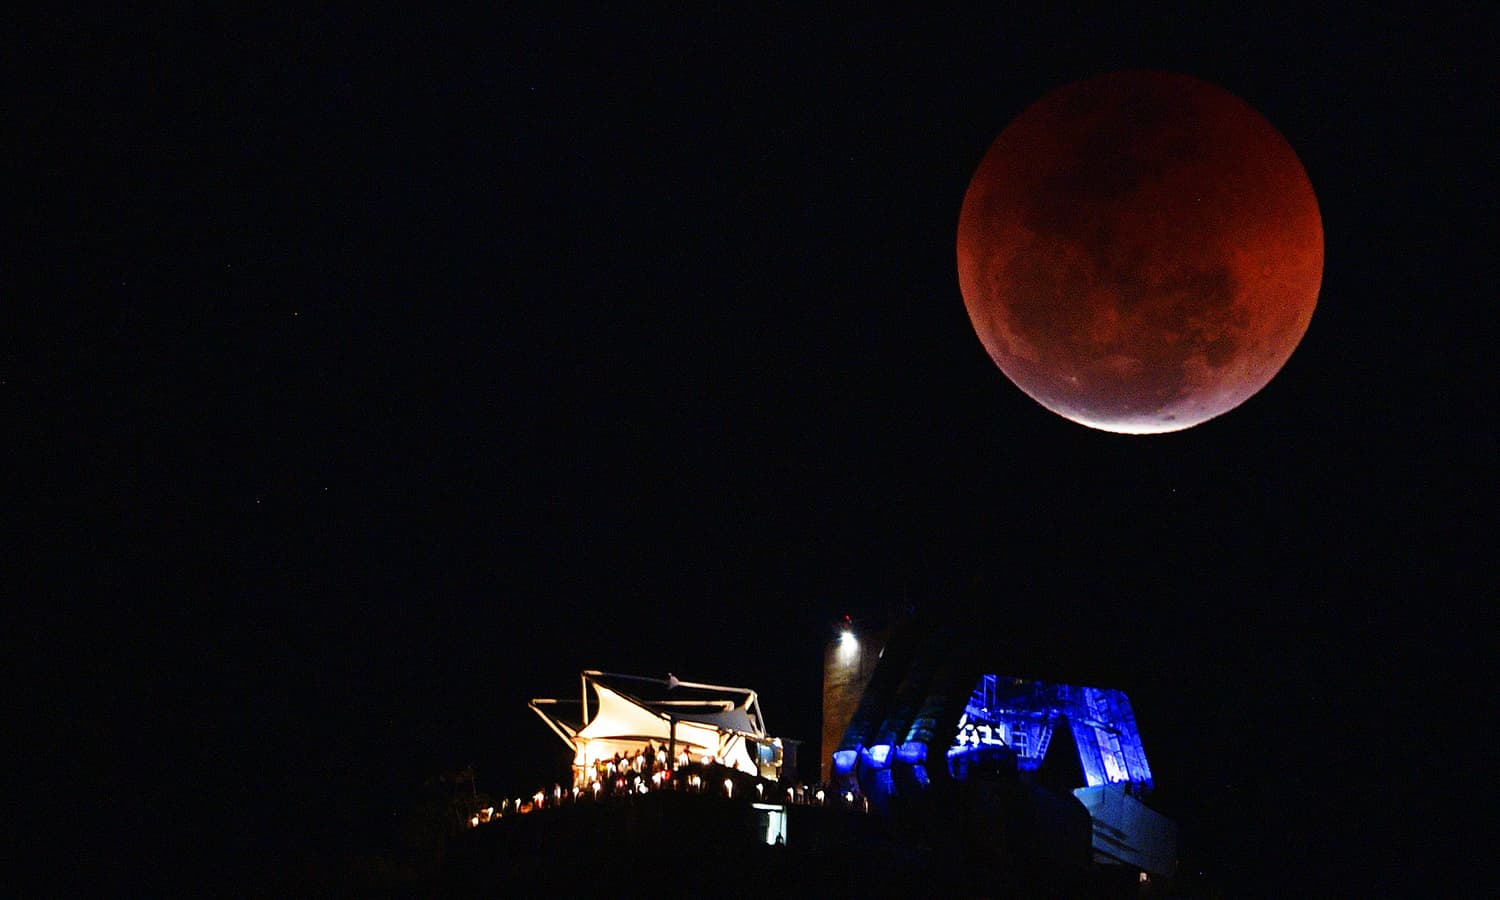 View of a moon eclipse over the Sugar Loaf mountain in Rio de Janeiro, Brazil on July 27, 2018. — AFP